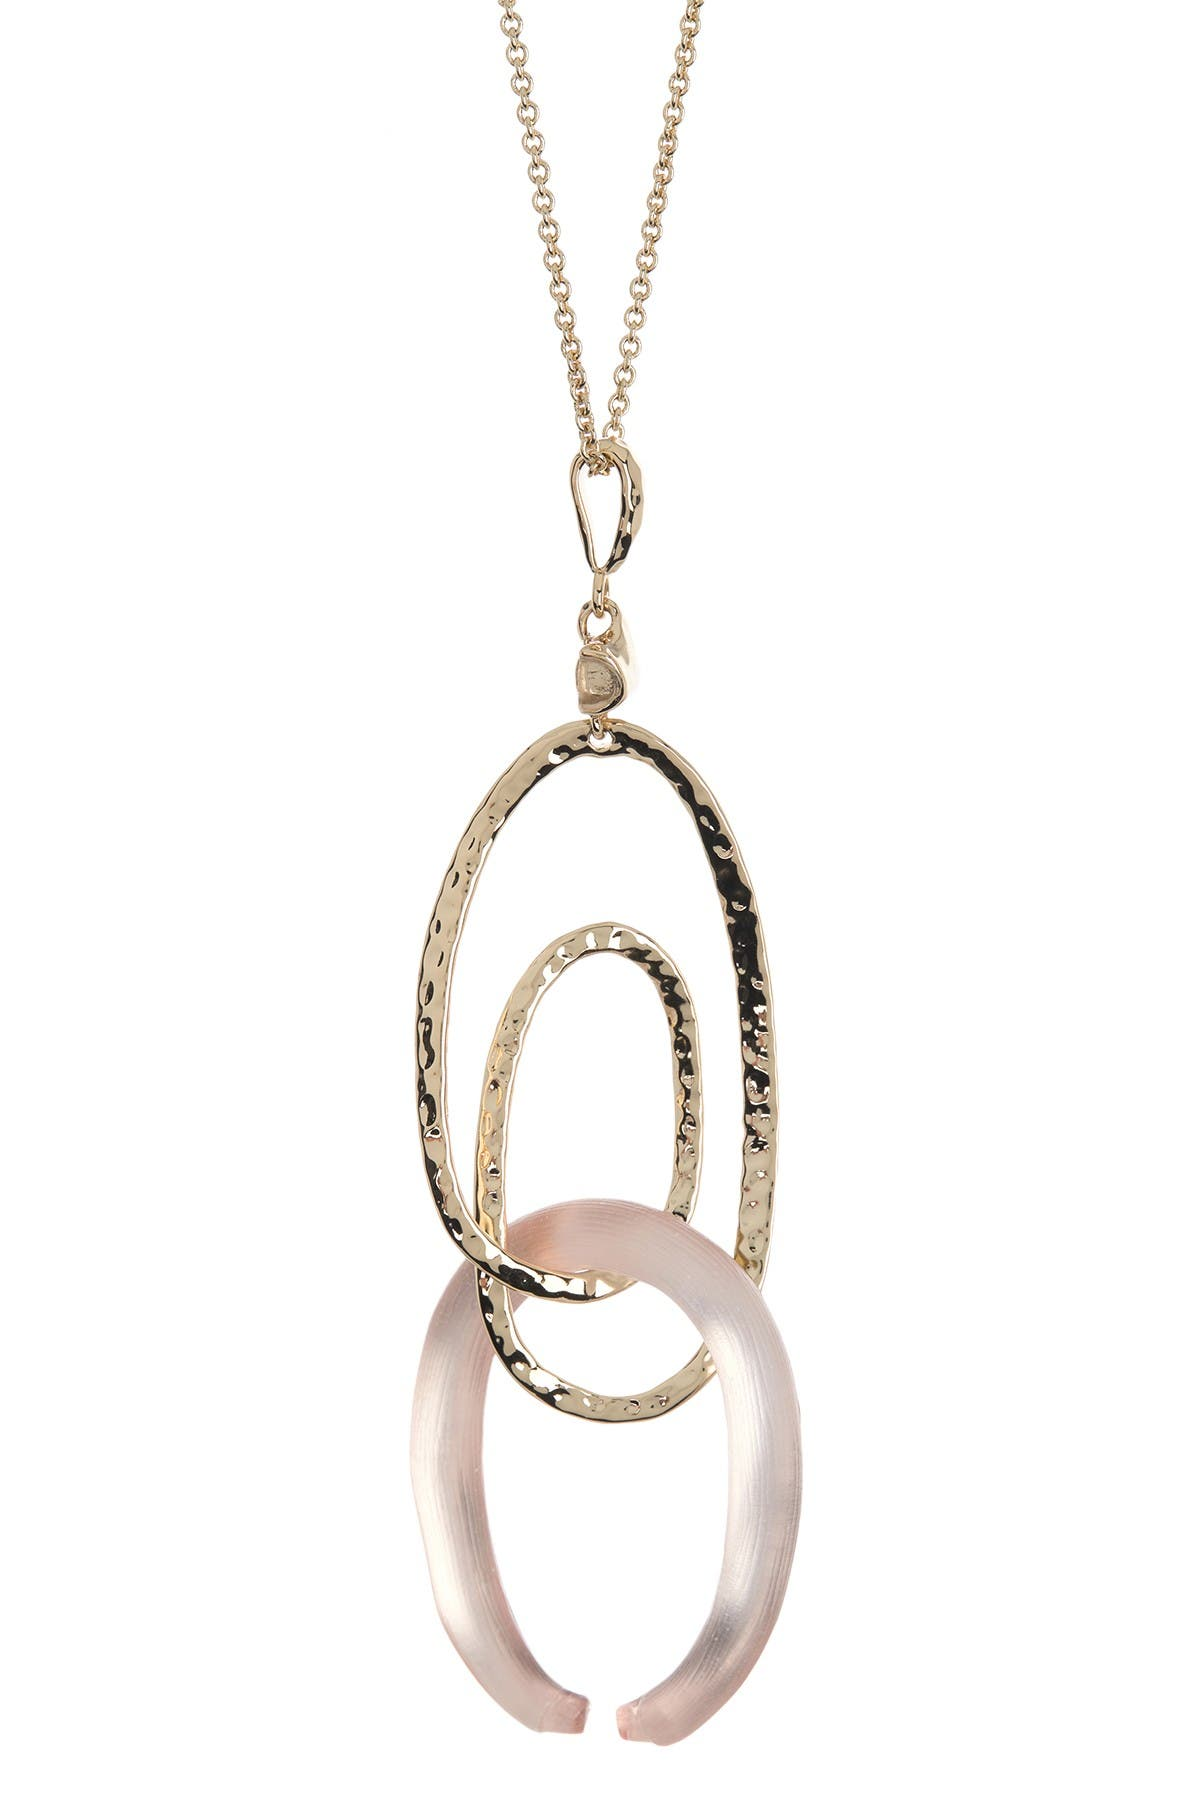 Image of Alexis Bittar 10K Gold Plated Hammered Spiral Lucite Pendant Necklace